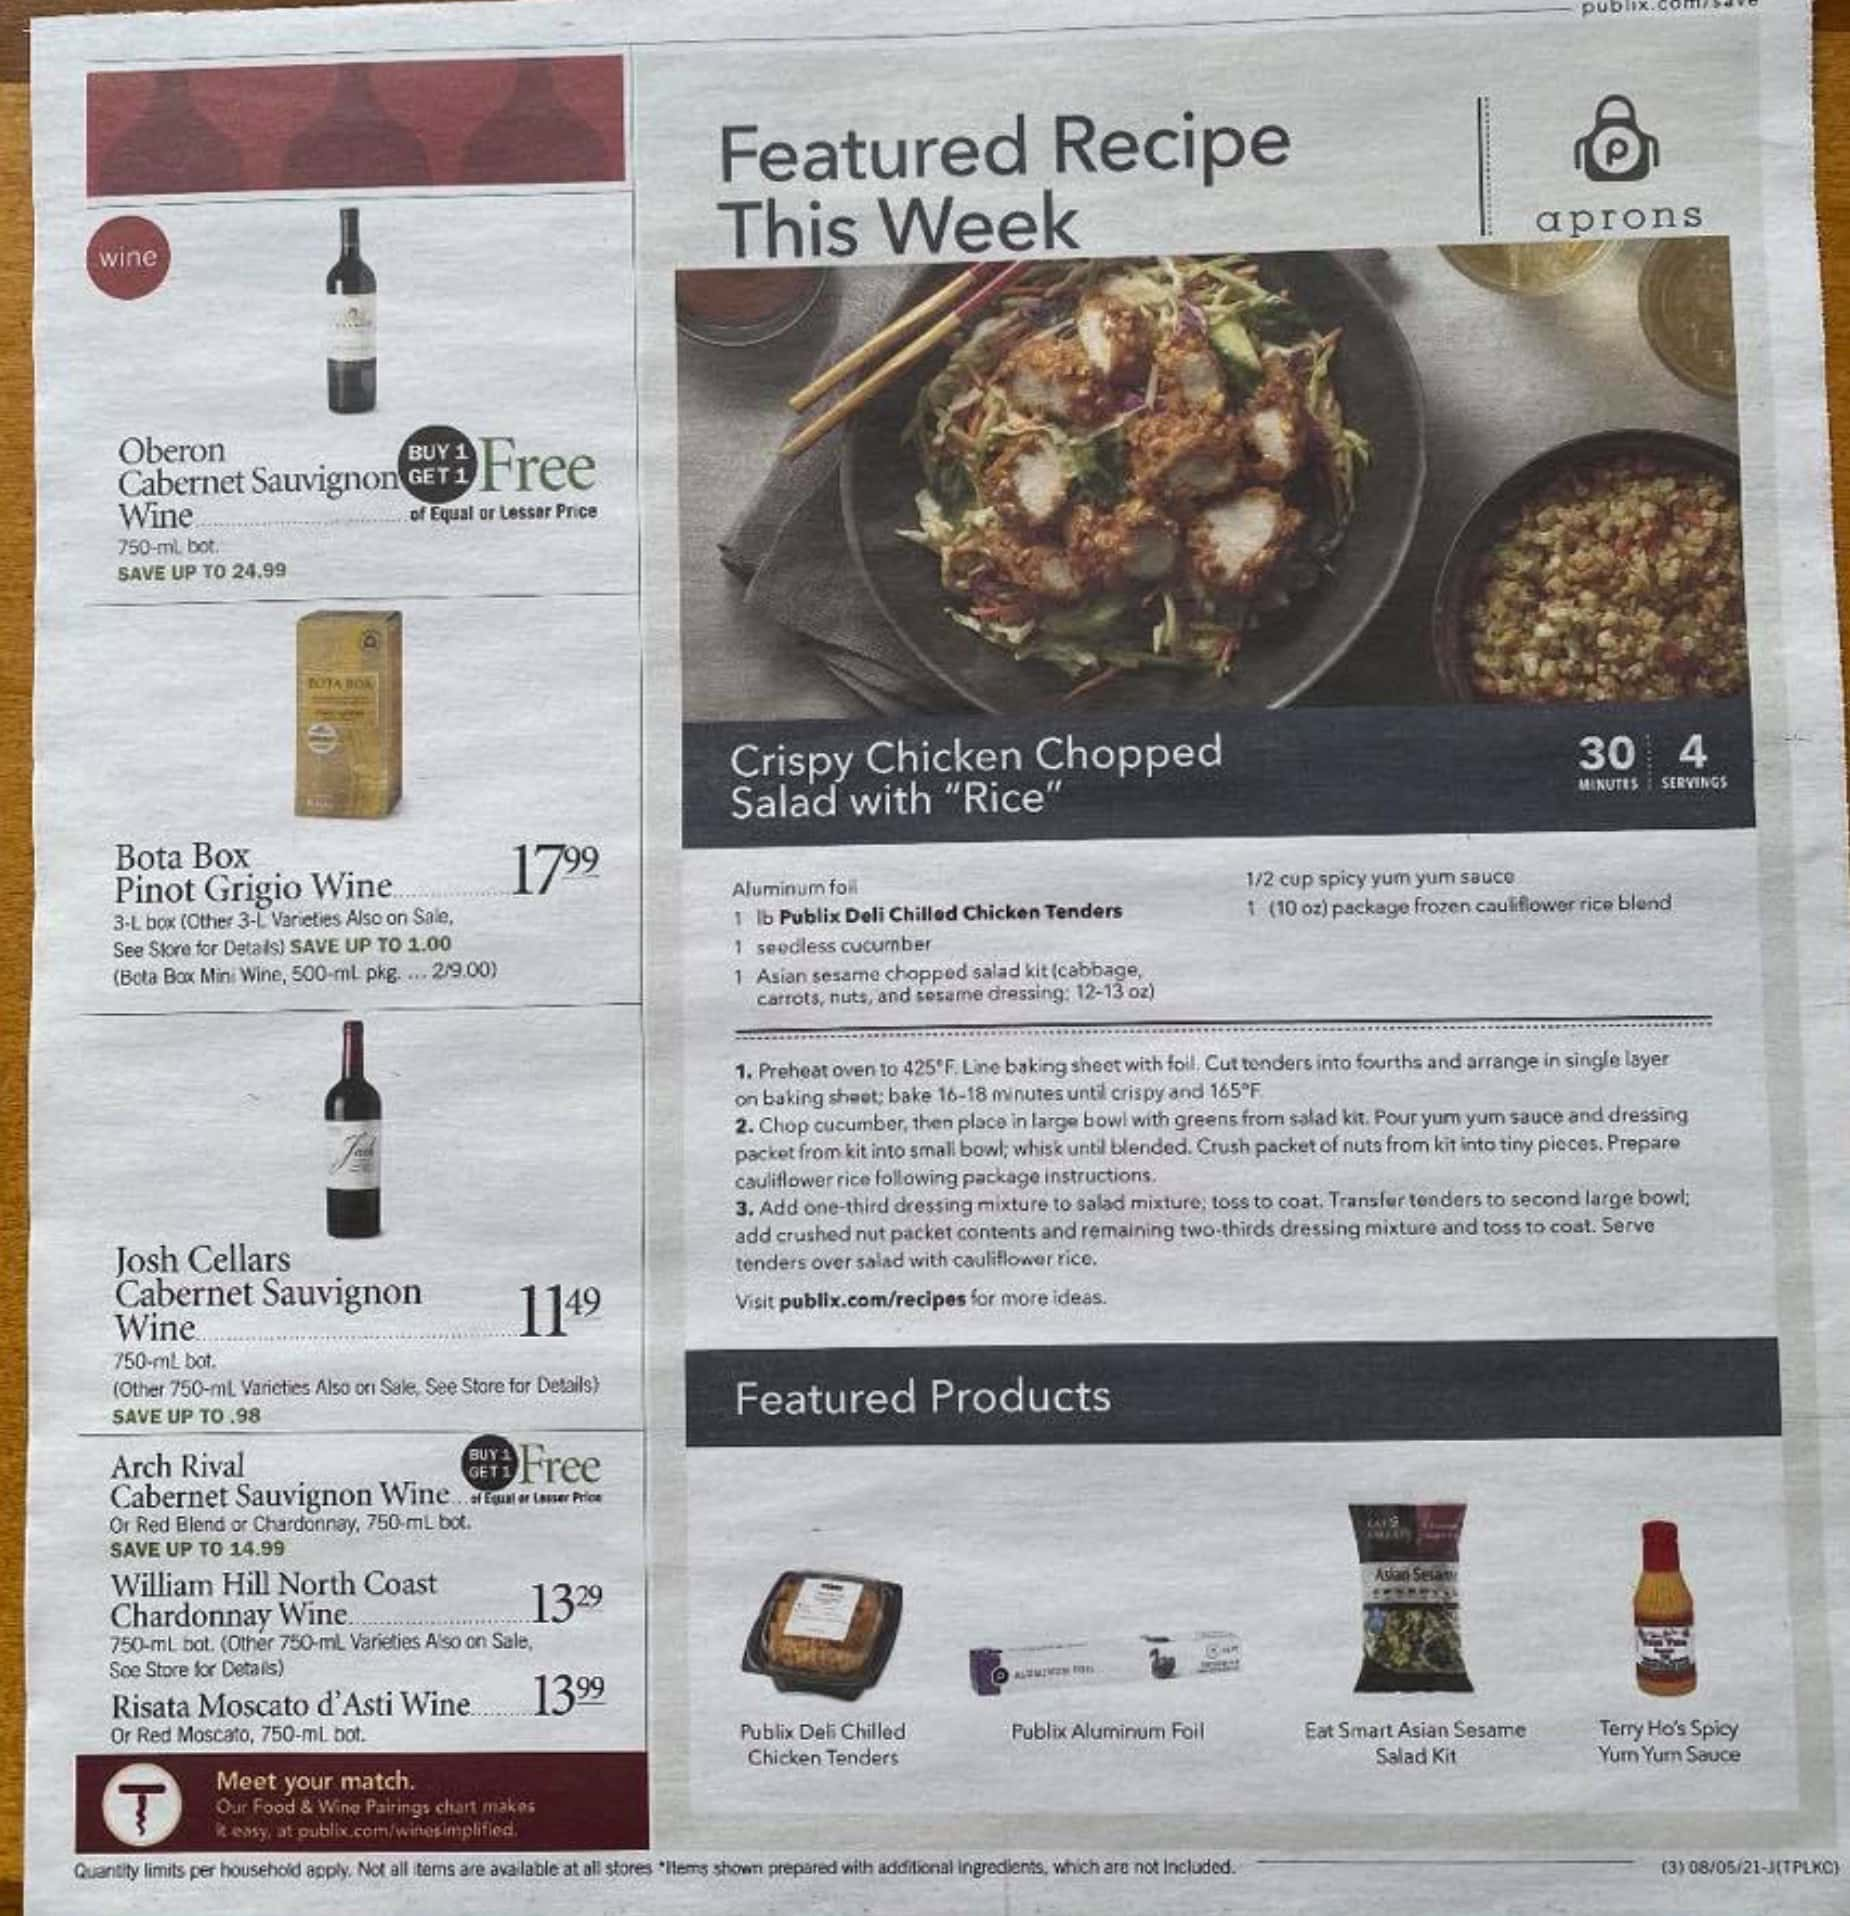 publix_weekly_ad_080421_03